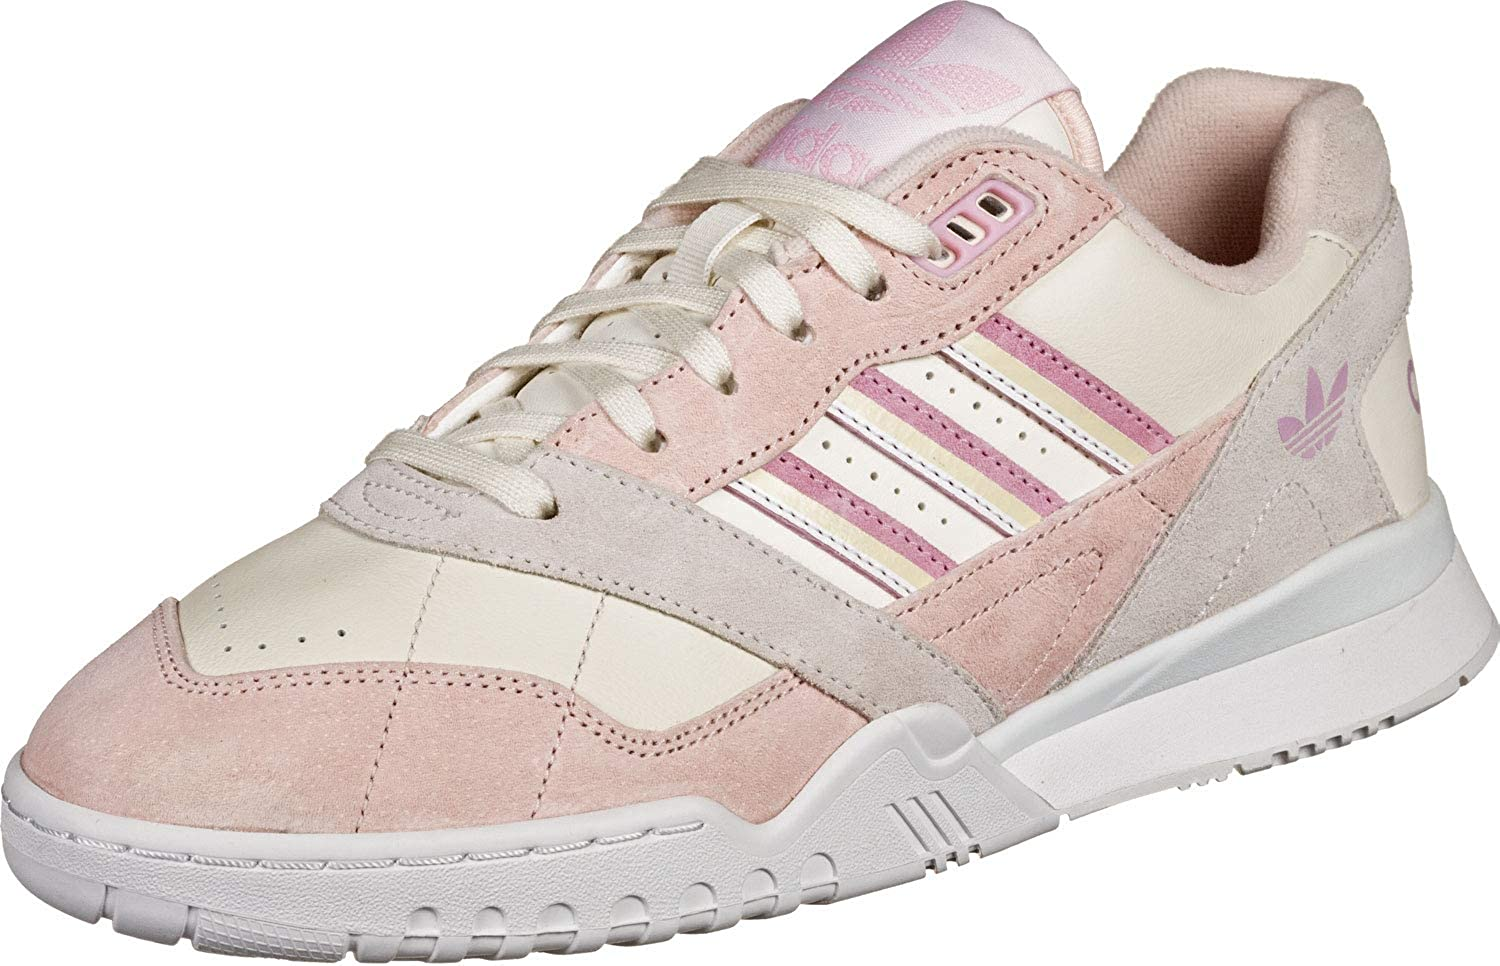 womens pink adidas trainers, OFF 70%,Cheap price!